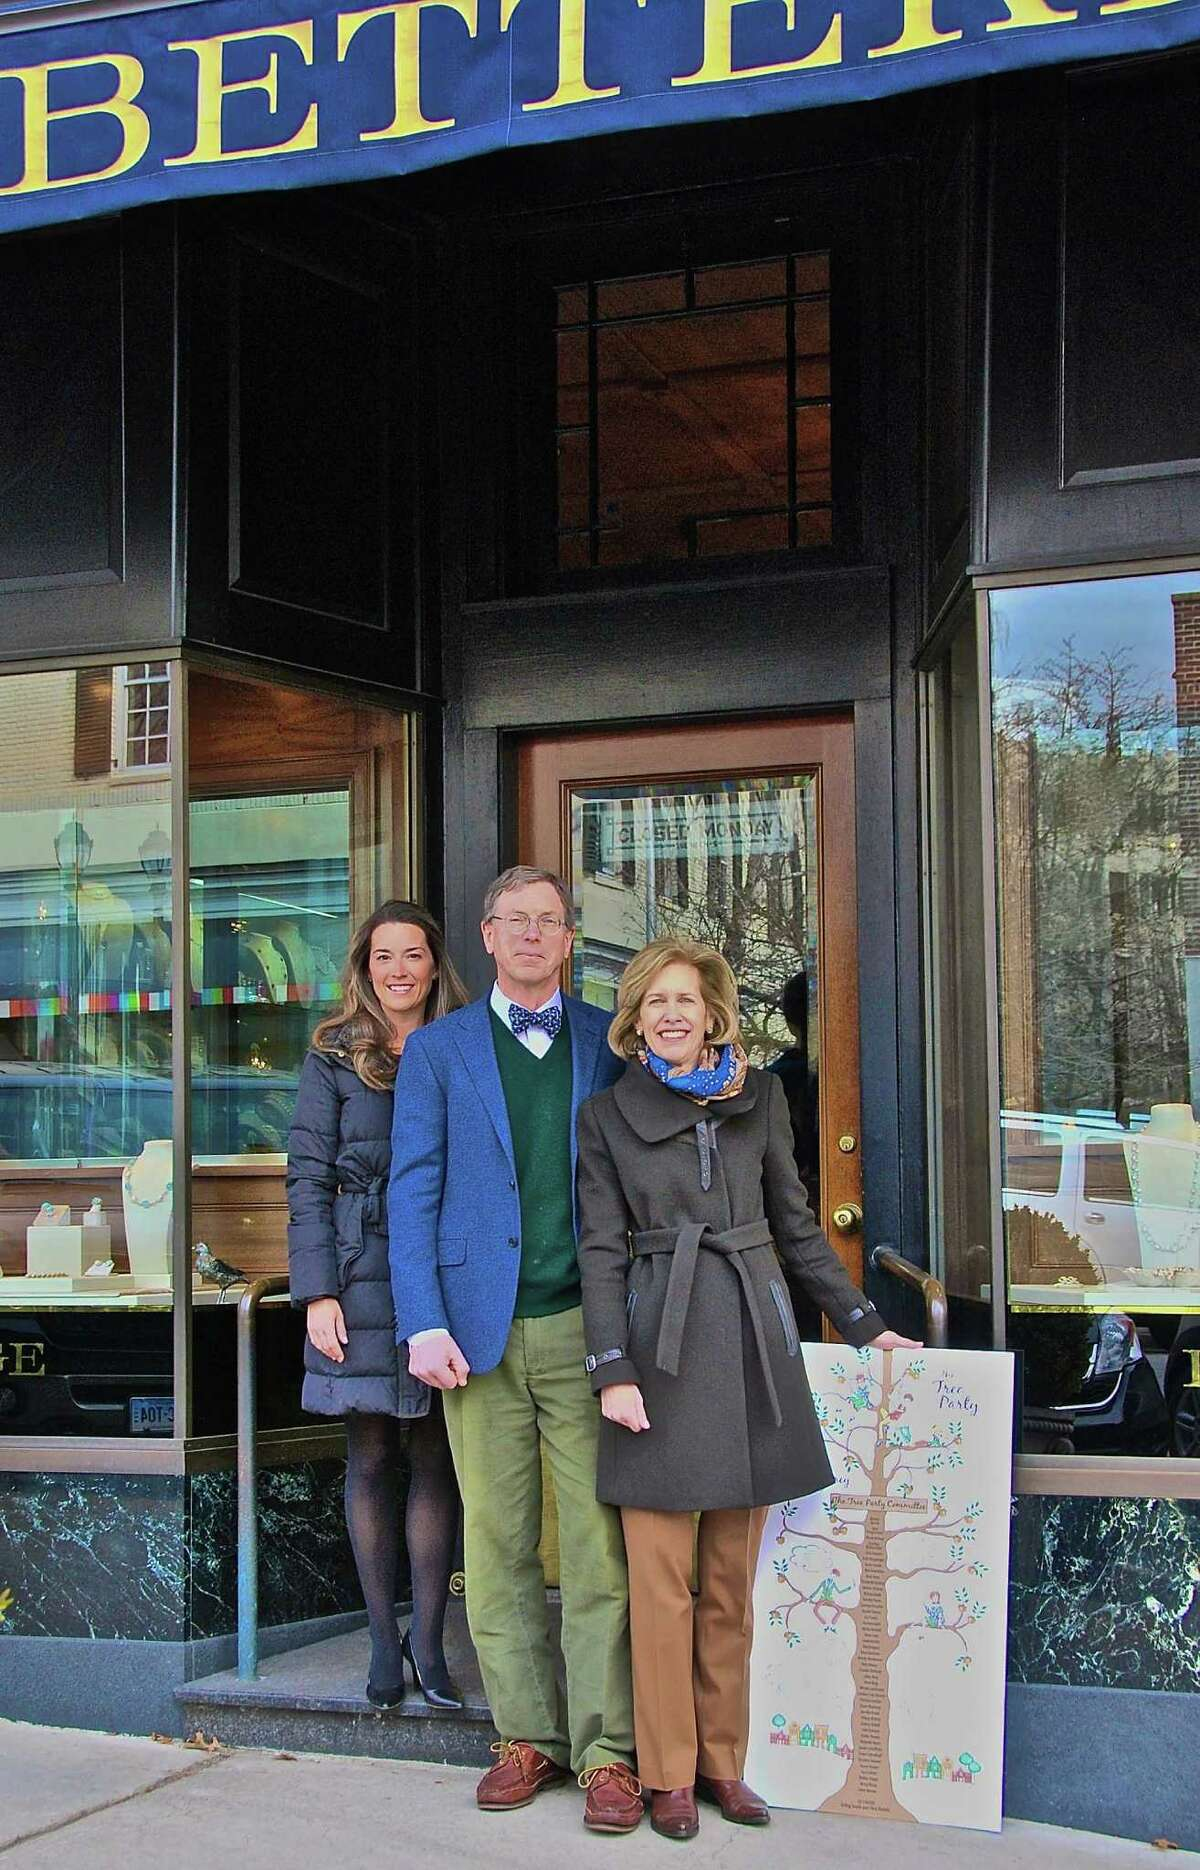 The Greenwich Tree Conservancy will hold its fourth annual Tree Party on Arbor Day, Friday, April 25 from 6:30 to 8:30 p.m. at McArdleâÄô Greenhouse on Arch St. in Greenwich. The event is open to the public. Pictured above, from left, are Ashley Allan, Co-Chairwoman of the Greenwich Tree ConservancyâÄôs Tree Party; Terry Betteridge of Betteridge Jeweler, a sponsor of the party; and Libby King, also a co-chairwoman. The GTCâÄôs mission is to preserve, maintain and enhance the trees and forest resources of Greenwich for the benefit of its citizens and also the wildlife that depends on those trees.